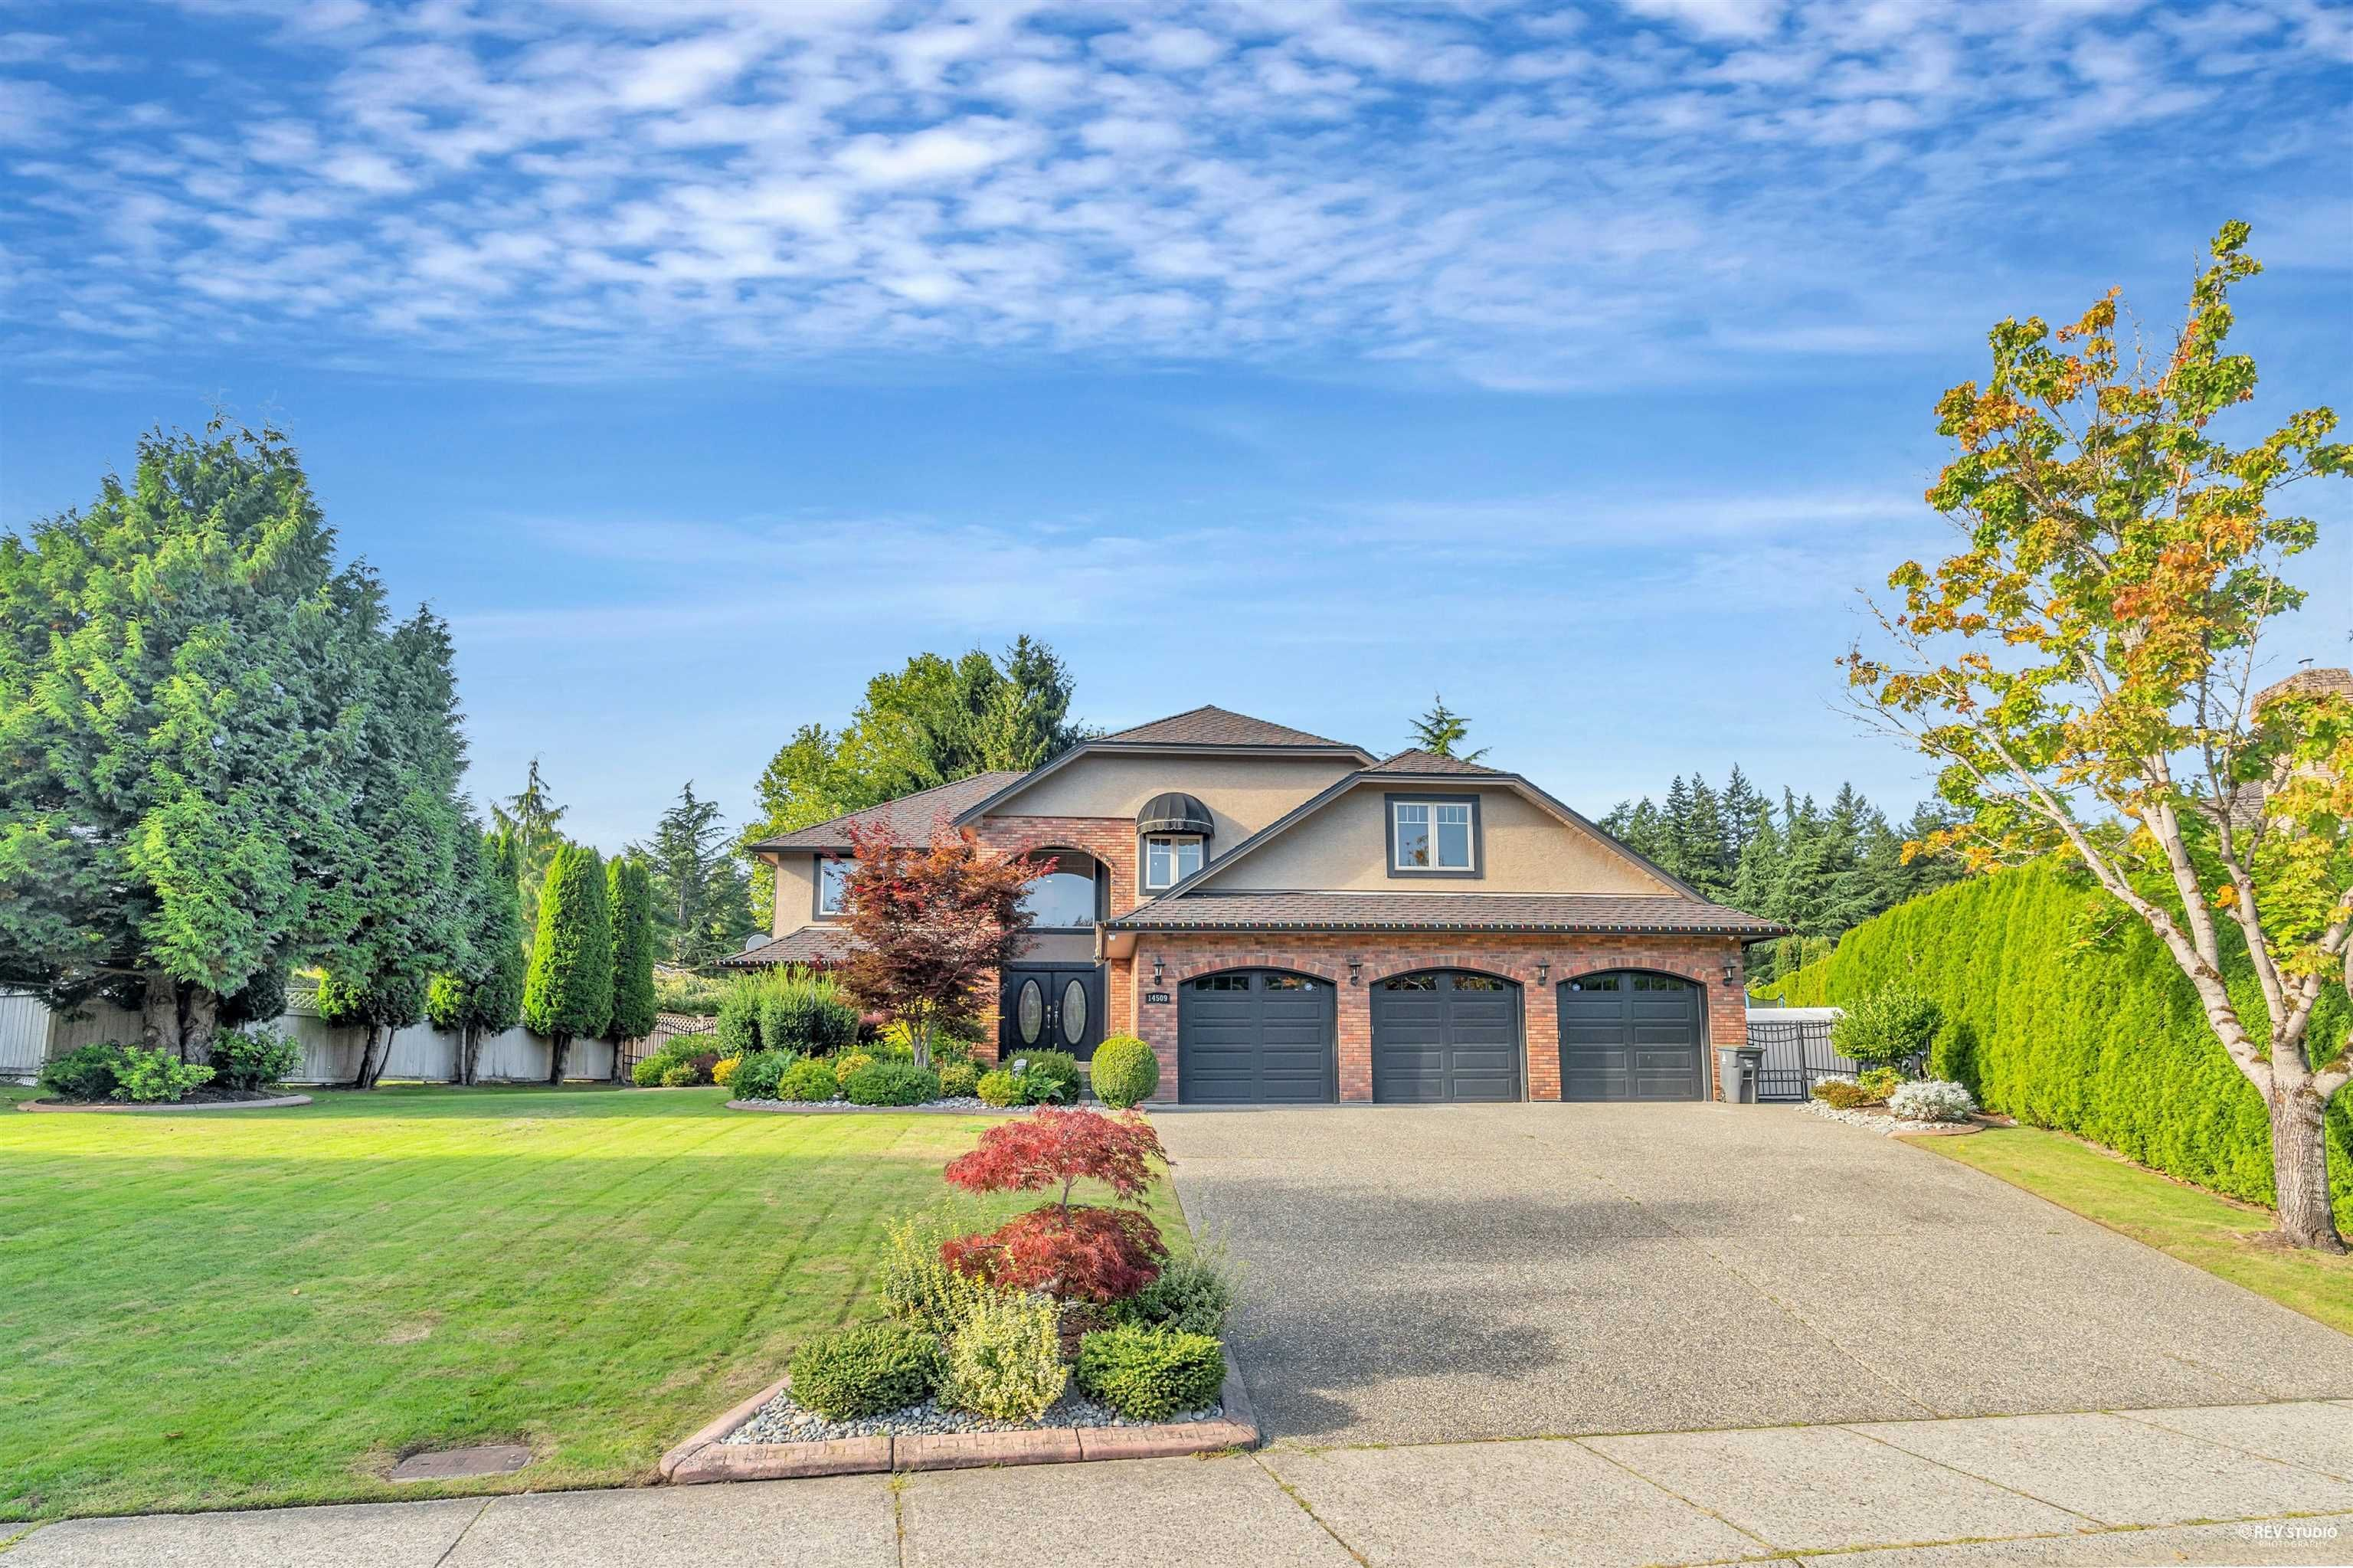 Main Photo: 14509 30 Avenue in Surrey: Elgin Chantrell House for sale (South Surrey White Rock)  : MLS®# R2620653